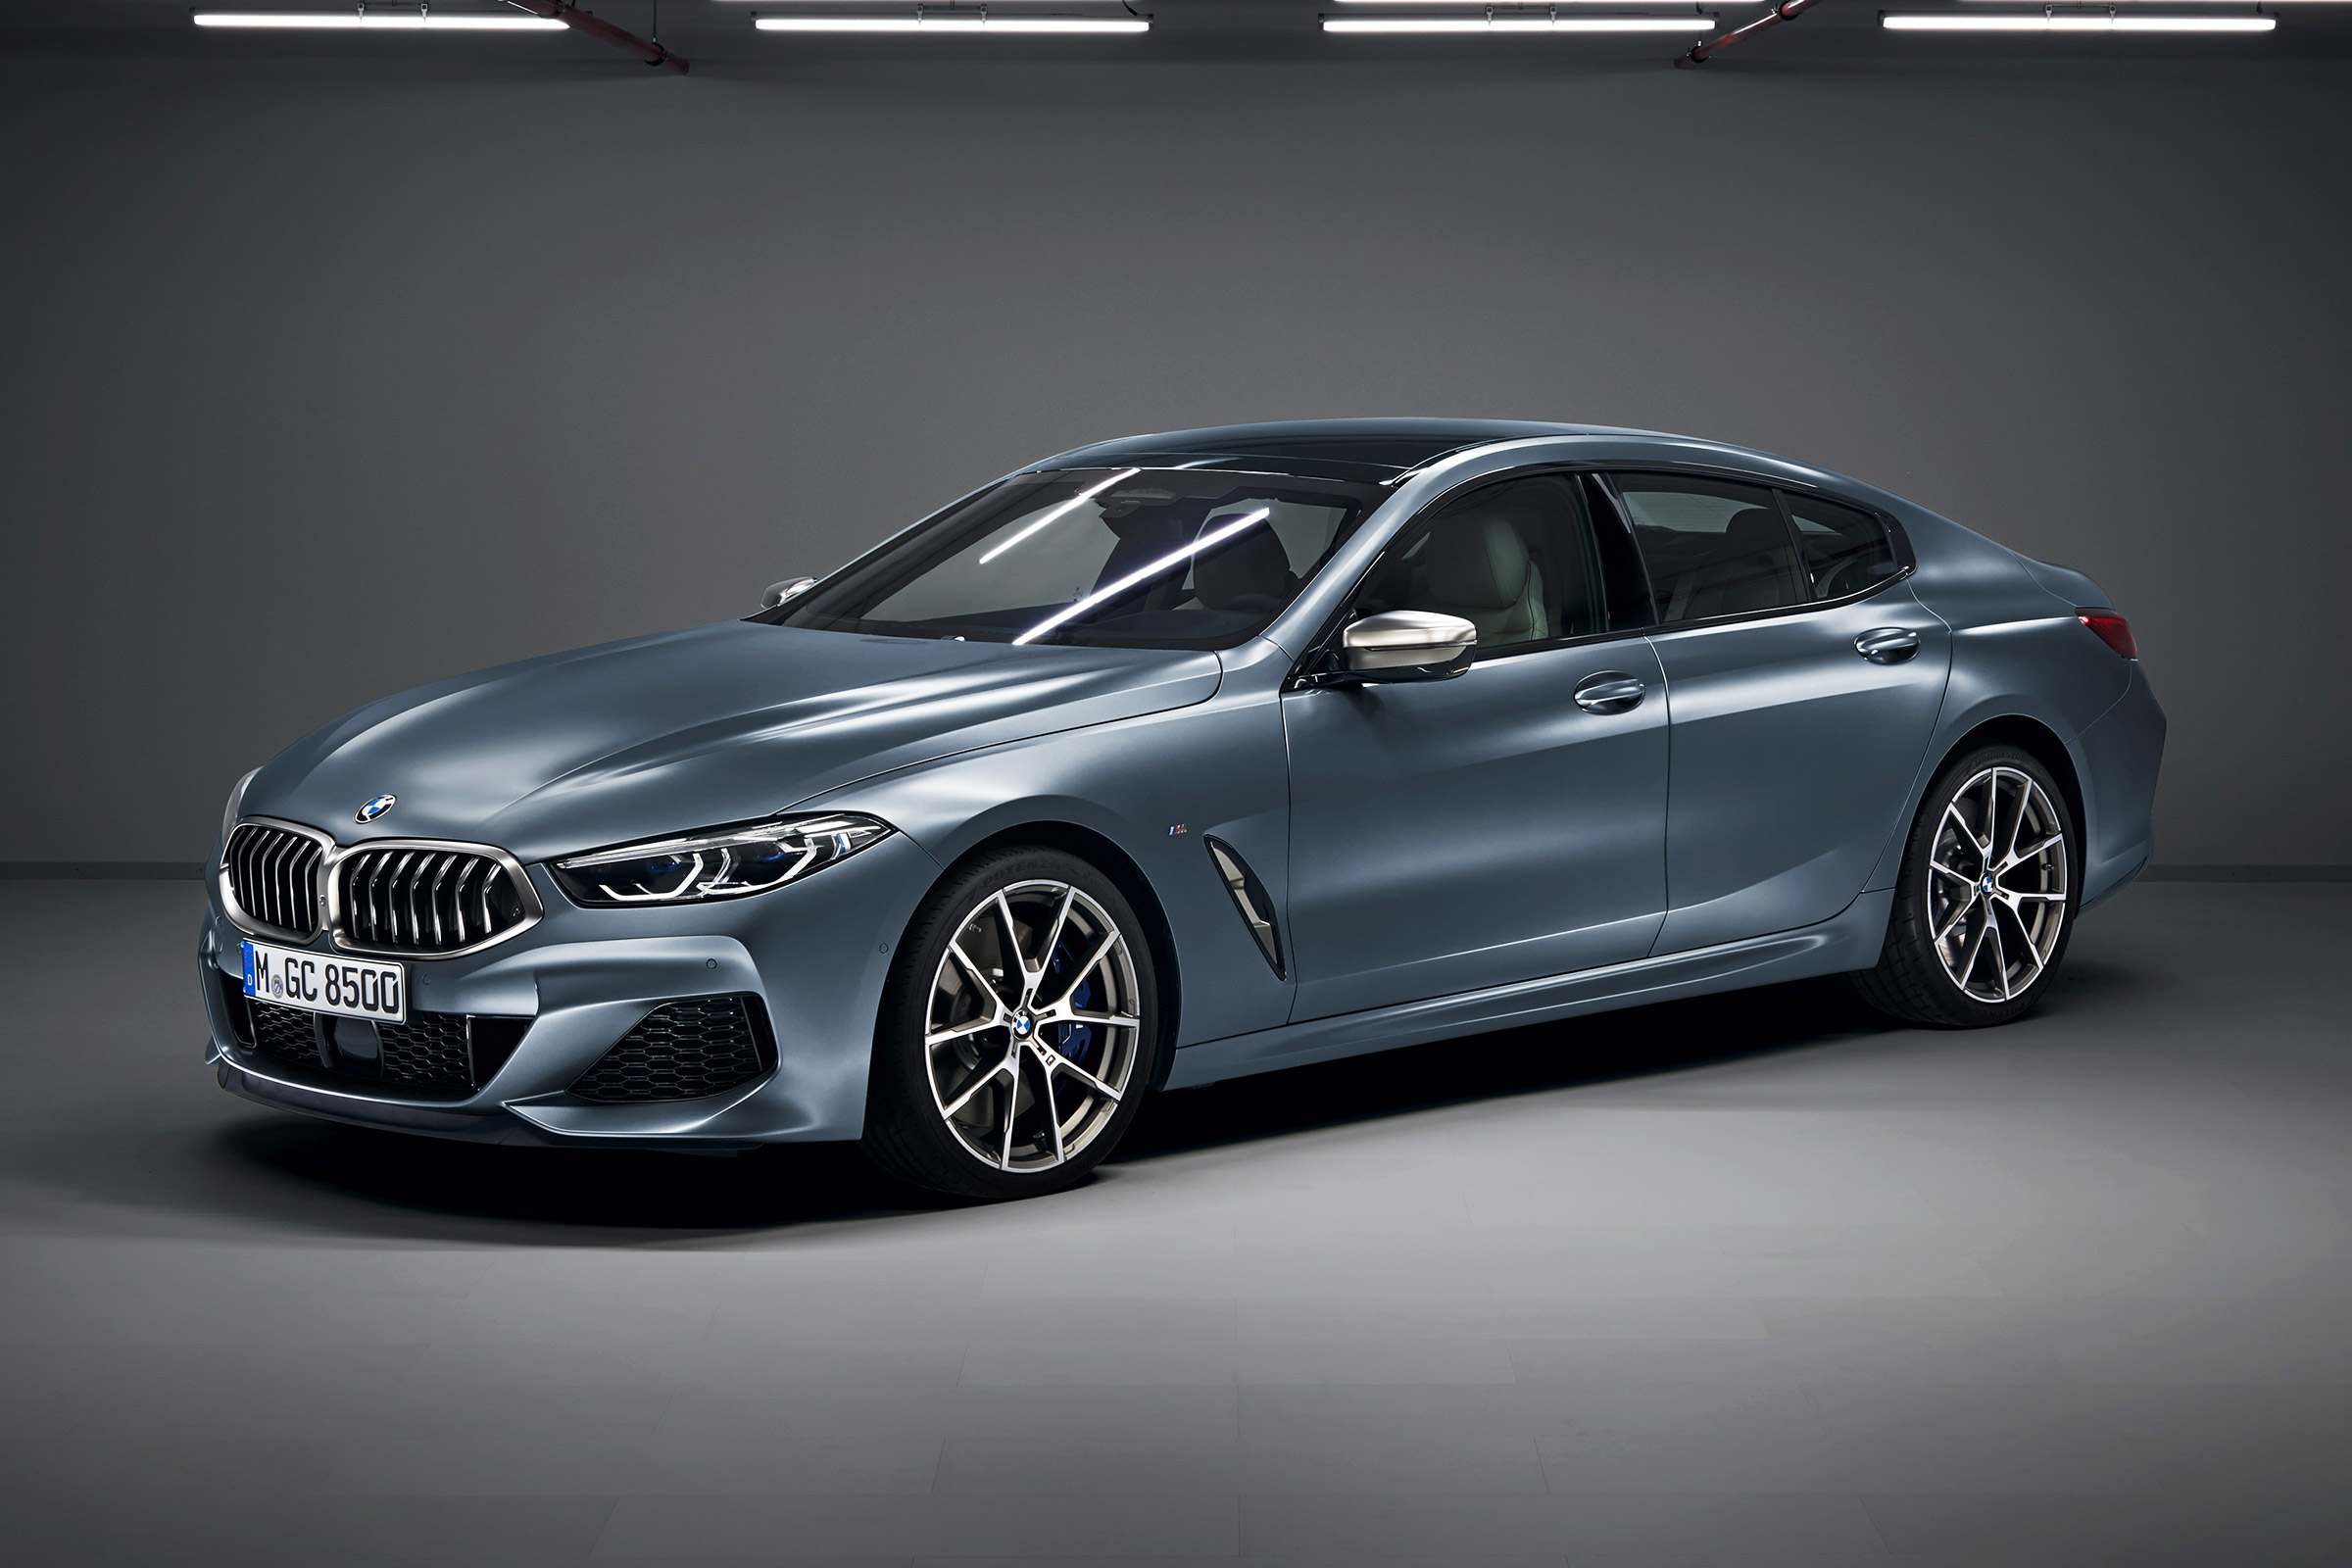 New 2019 BMW 8 Series Gran Coupe completes line-up | Auto ...